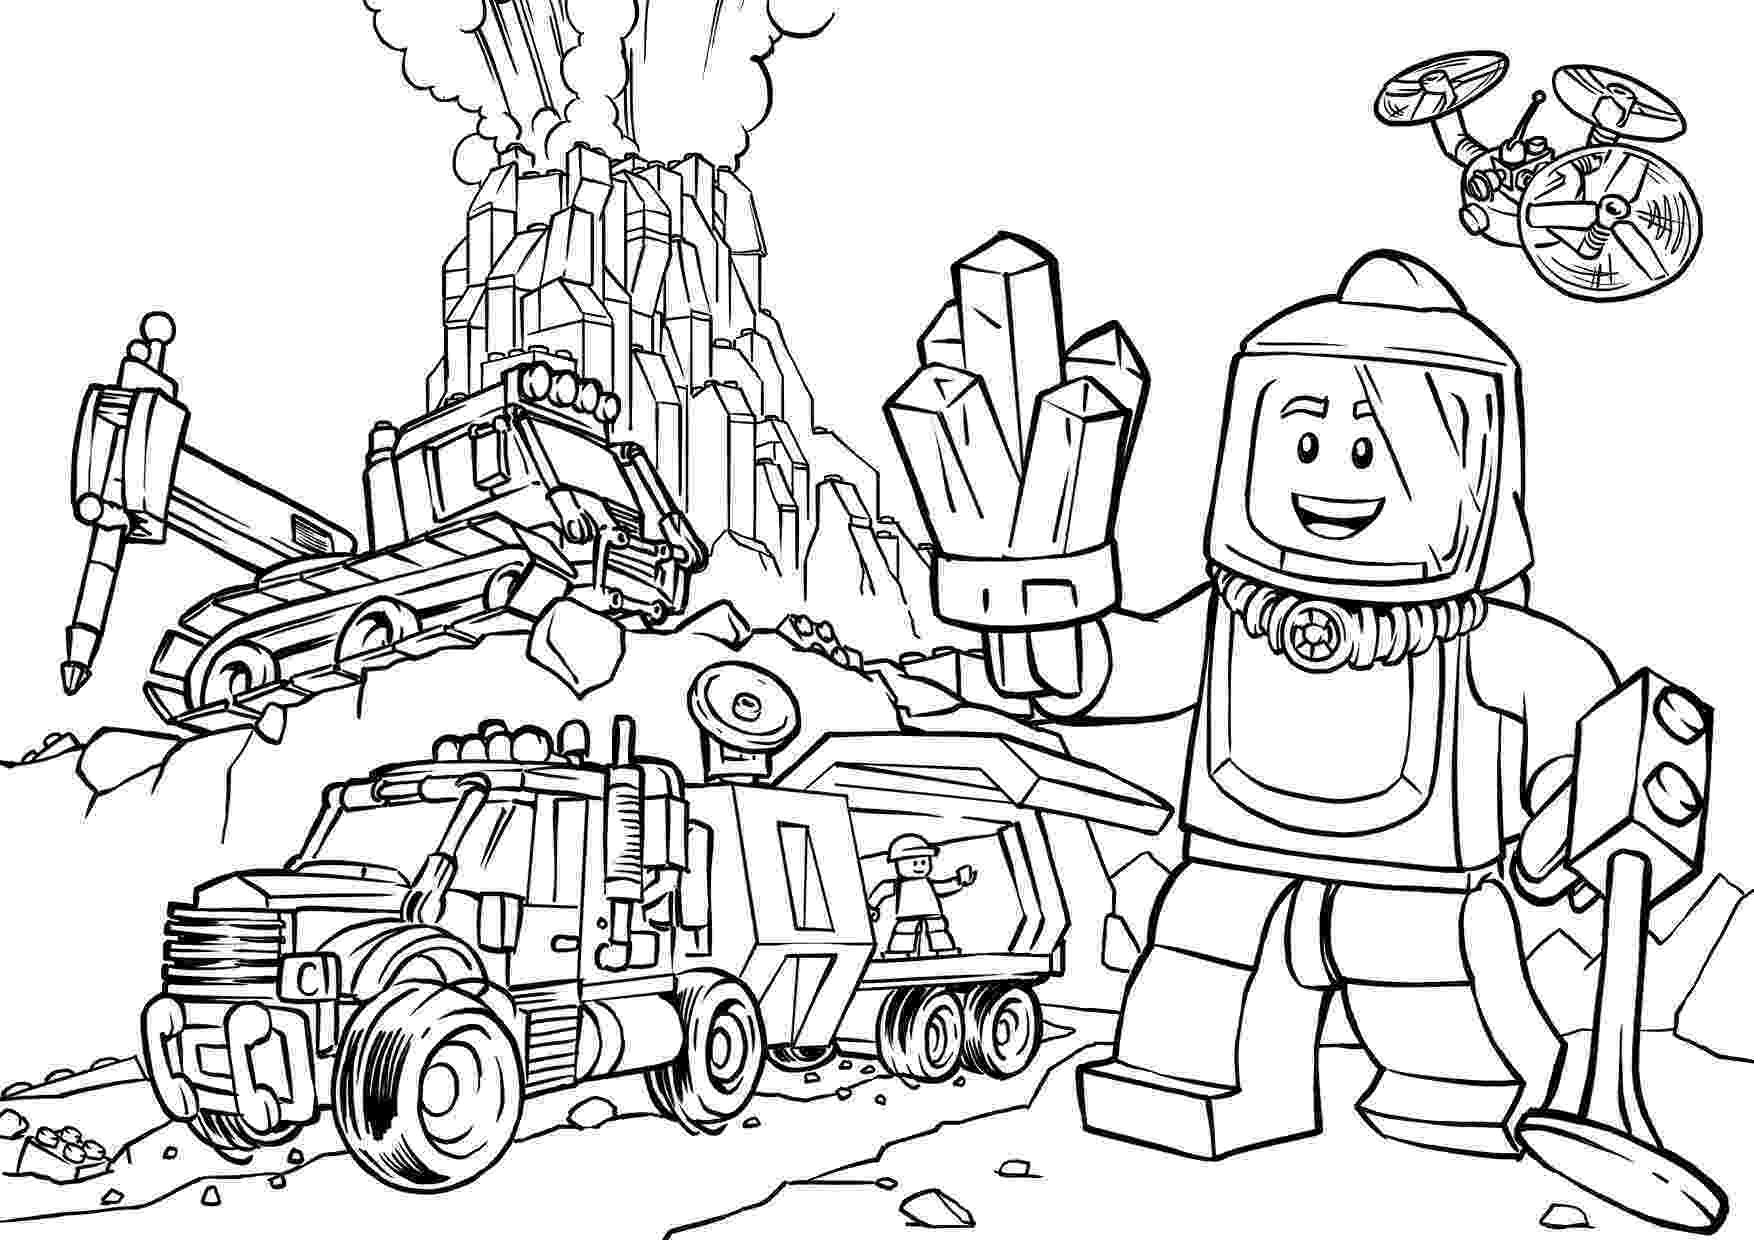 lego color sheets lego star wars coloring pages to download and print for free sheets color lego